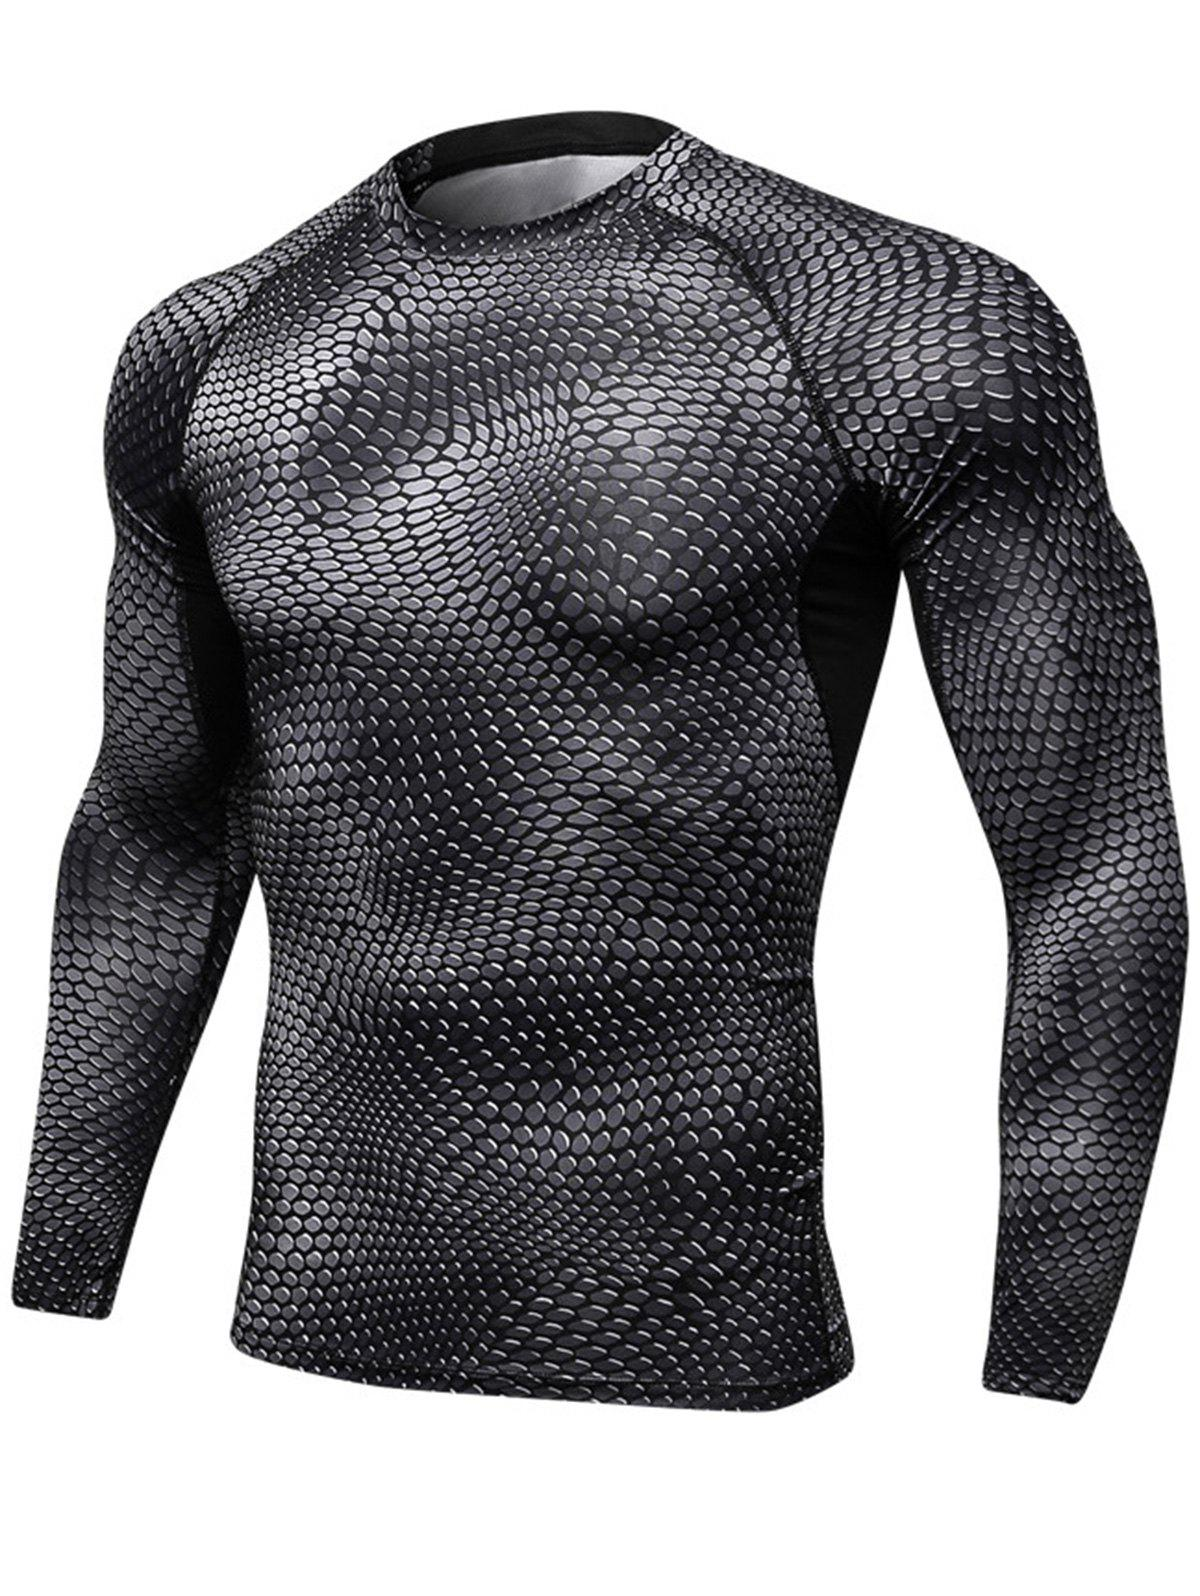 Quick Dry Stretchy 3D Printed Long Sleeve T-shirt - BLACK 2XL